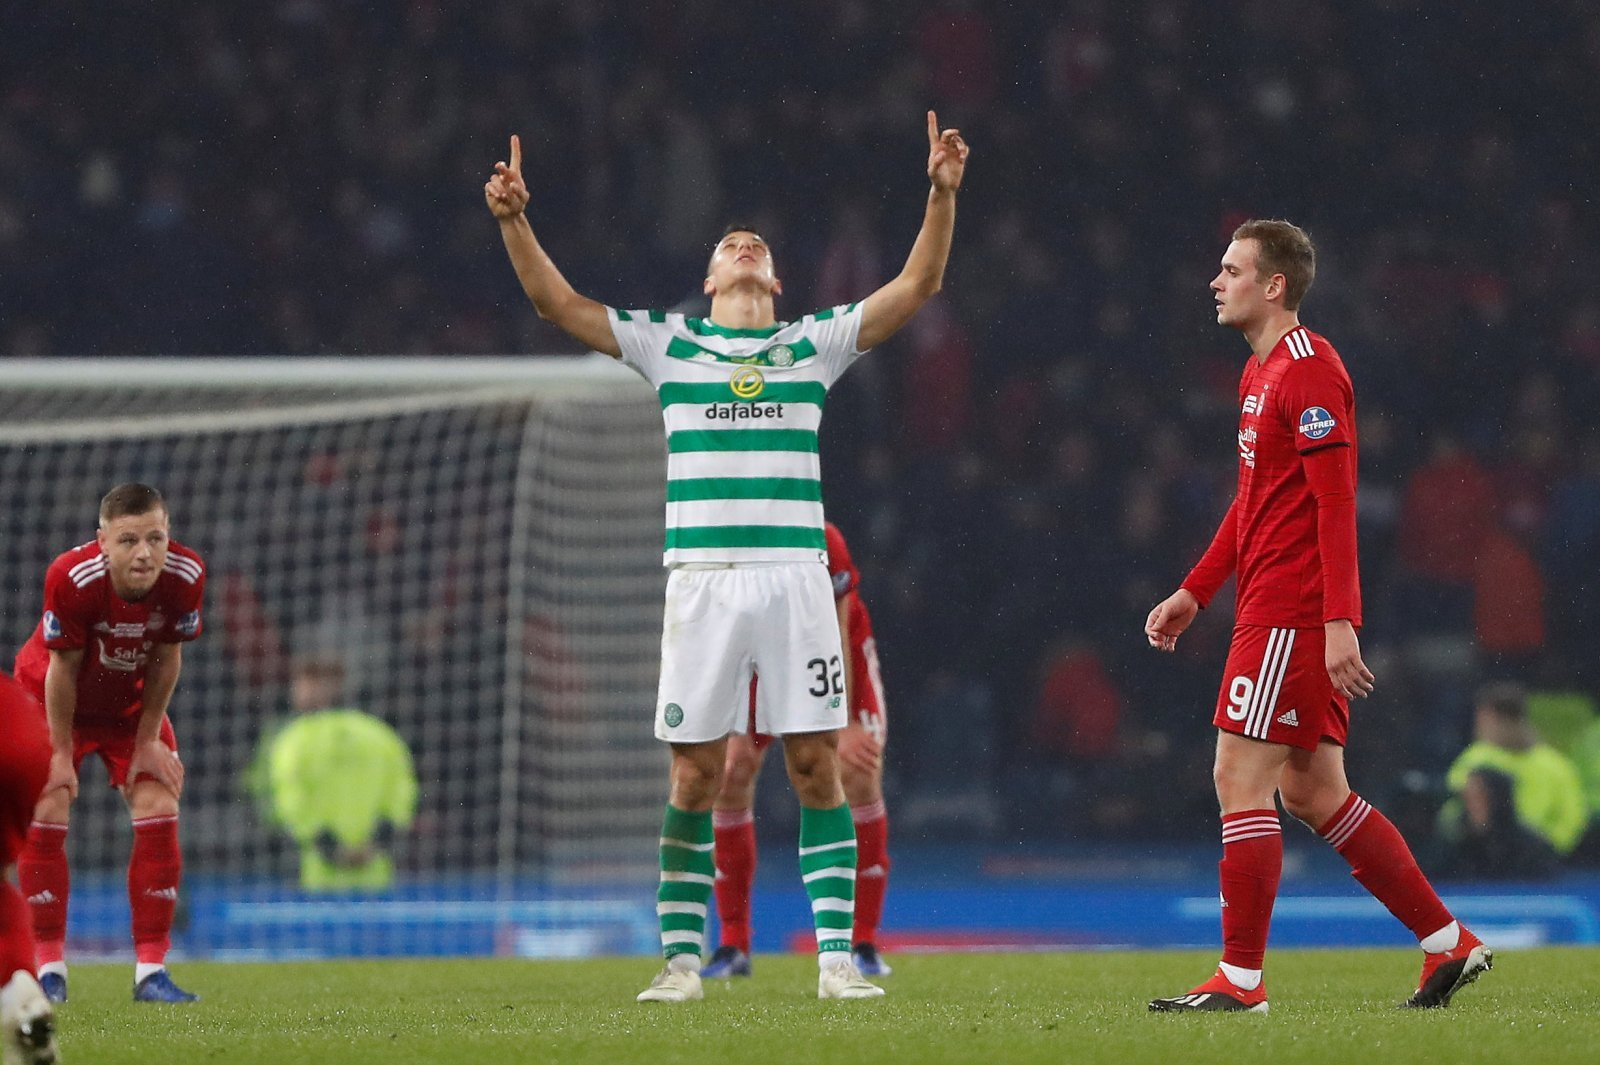 Celtic: Filip Benkovic must be retained to keep defensive solidity